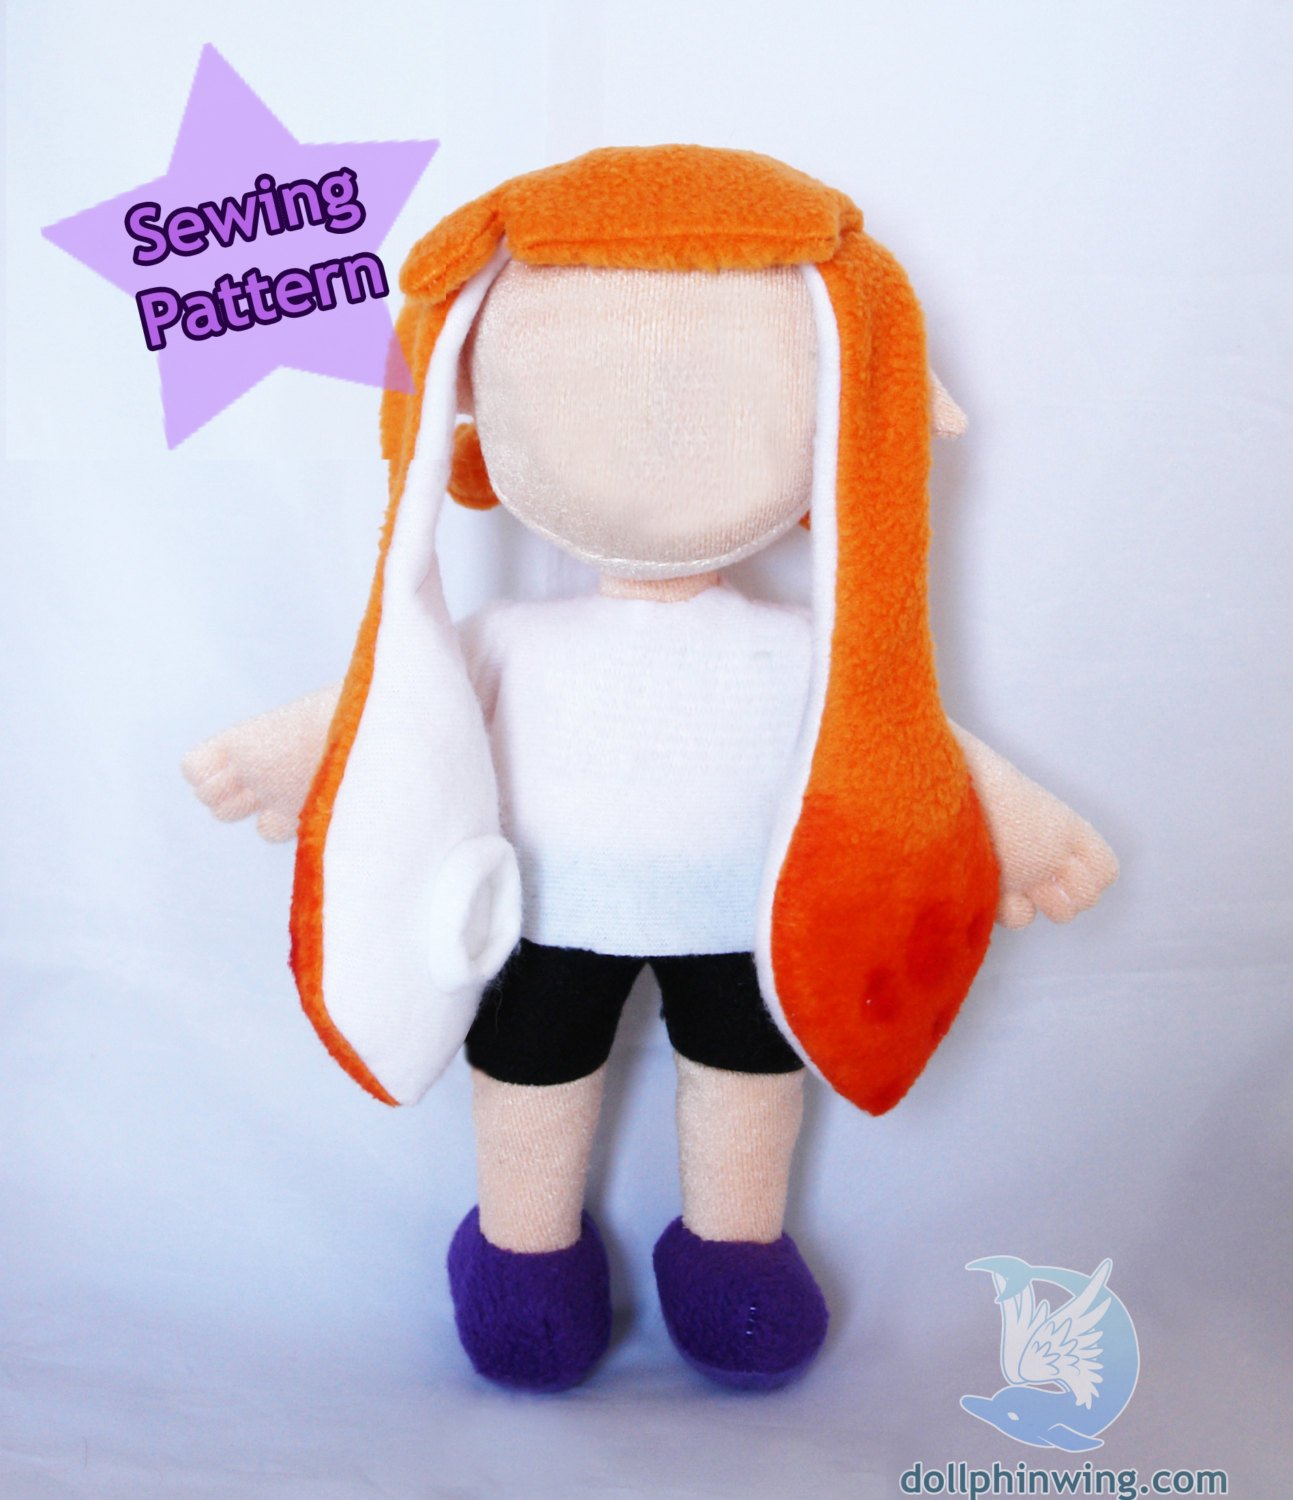 Squid Girl Doll Plush Sewing Pattern sewing pattern and tutorial doll_pattern, pdf_pattern, plushie_pattern, sewing_pattern, splatoon